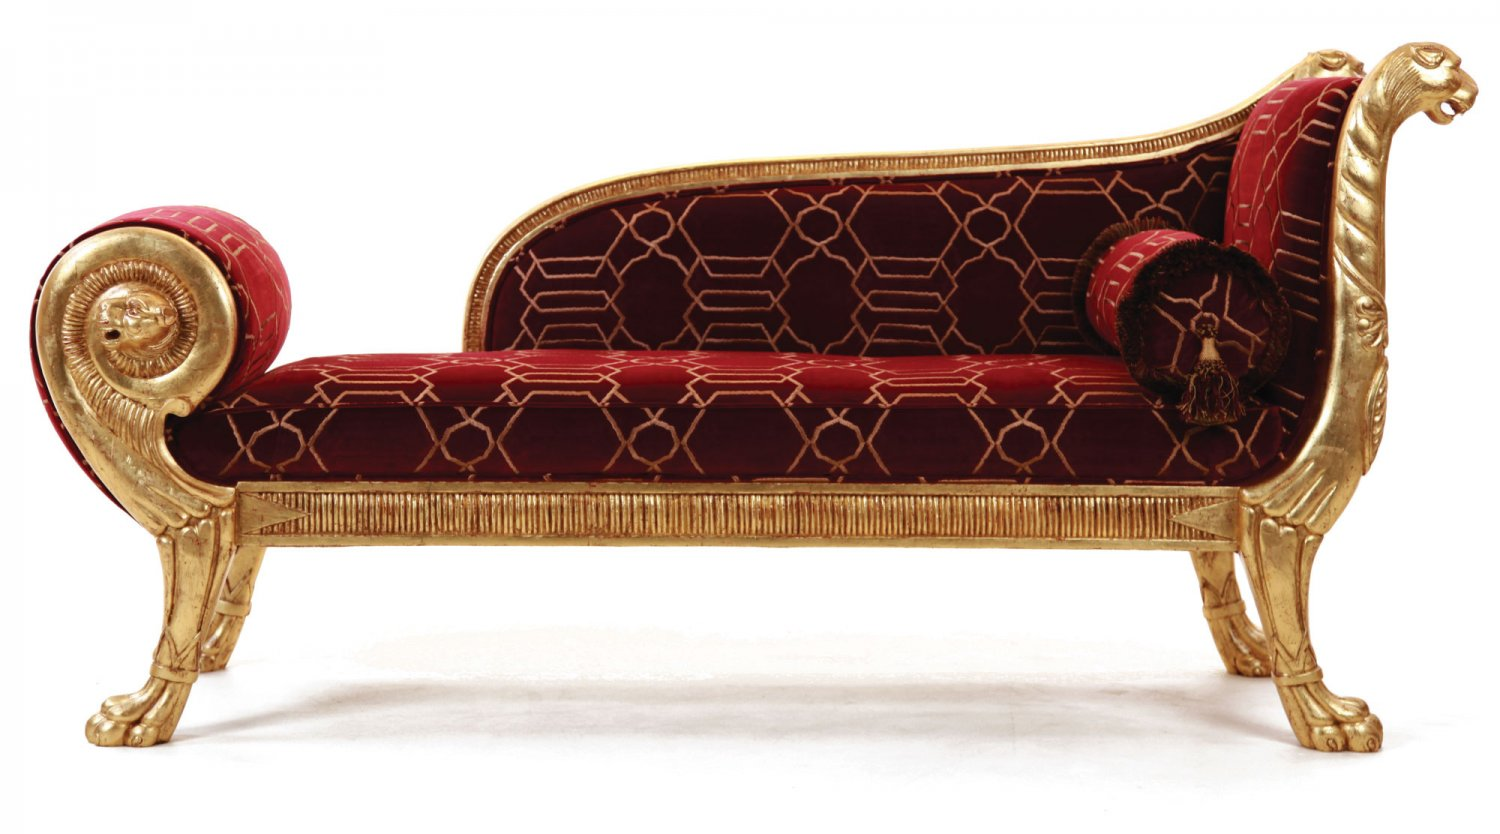 Gillows style leopard chaise in Linwood fabric